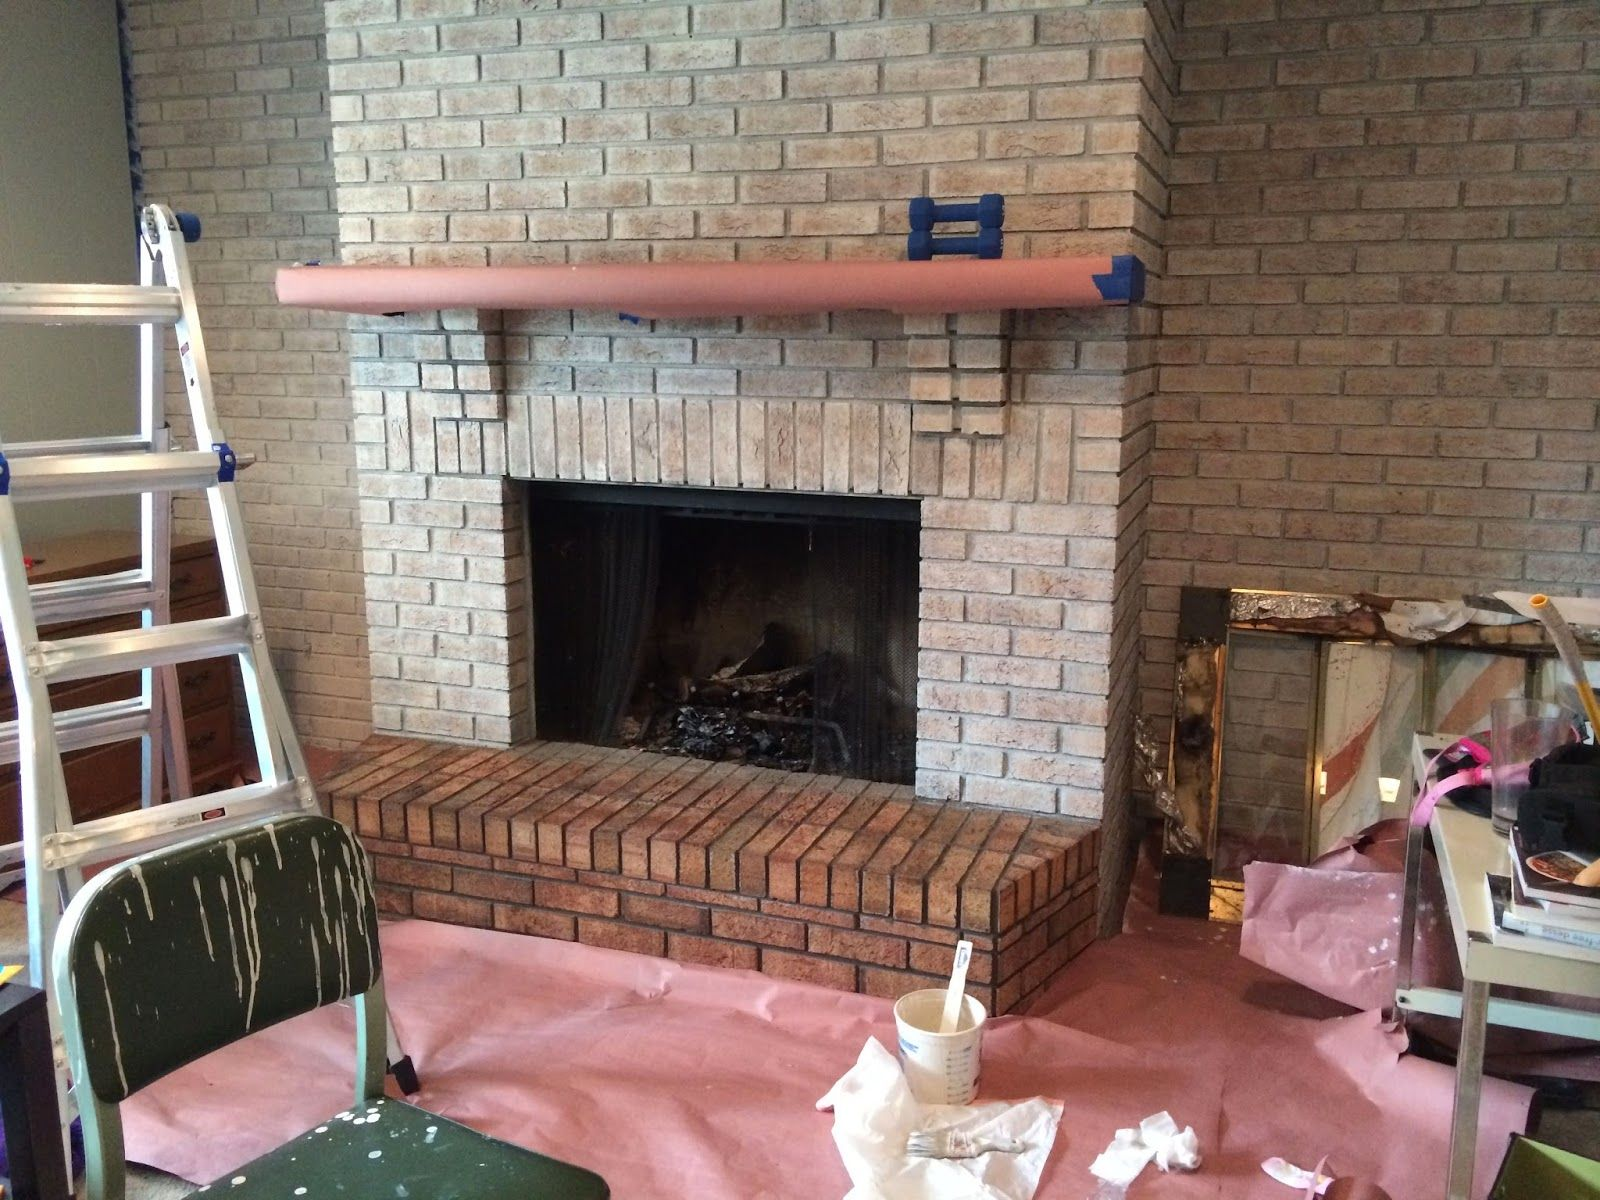 Walking with dancers the family room s fireplace update - Walking With Dancers The Family Room S Fireplace Update